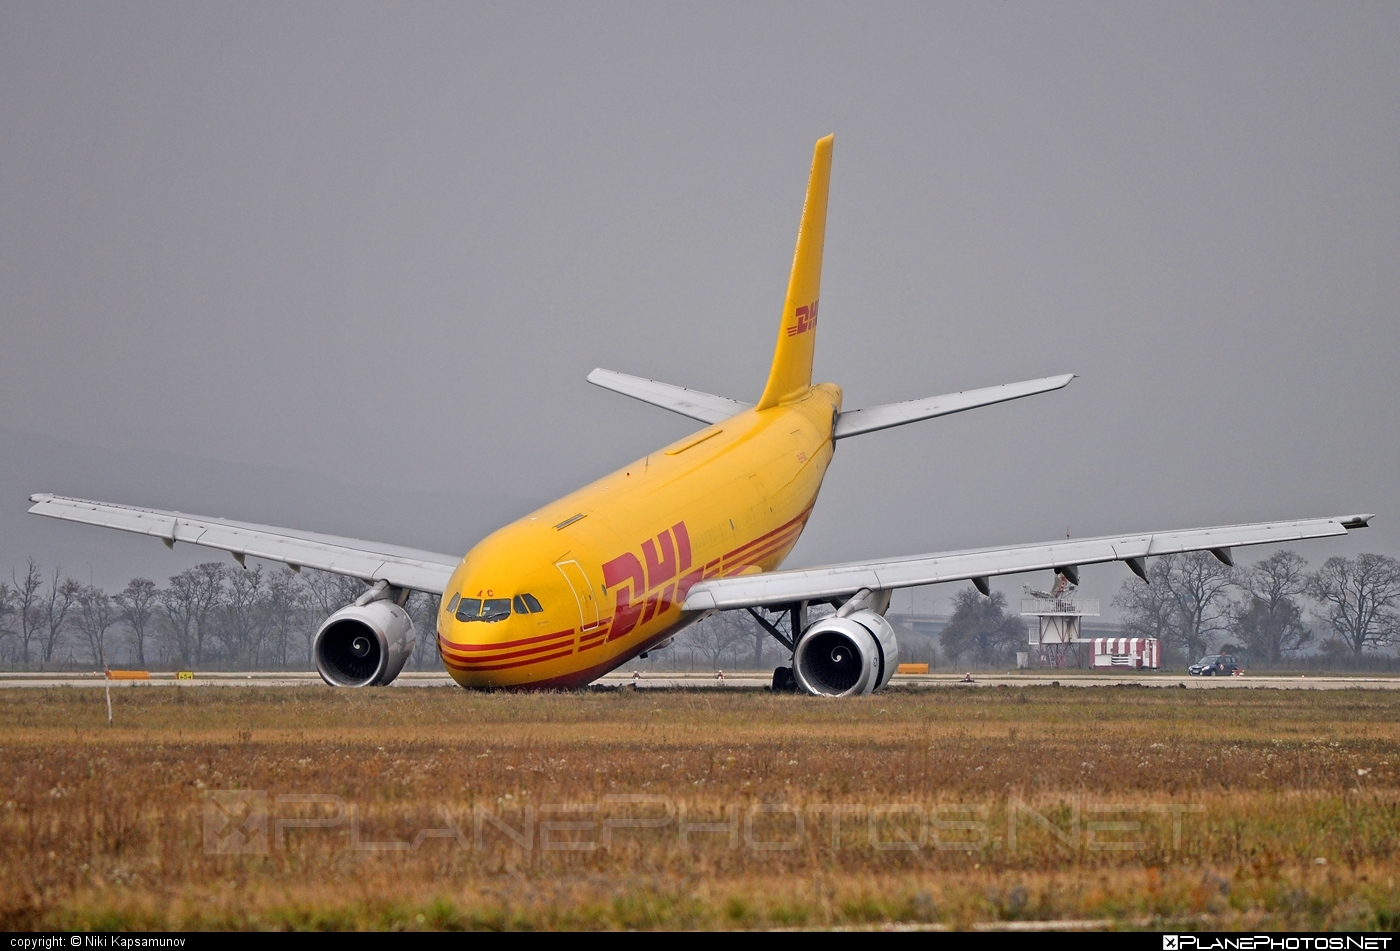 Airbus A300B4-203F - EI-EAC operated by Air Contractors #a300 #airbus #frontgearcollapsed